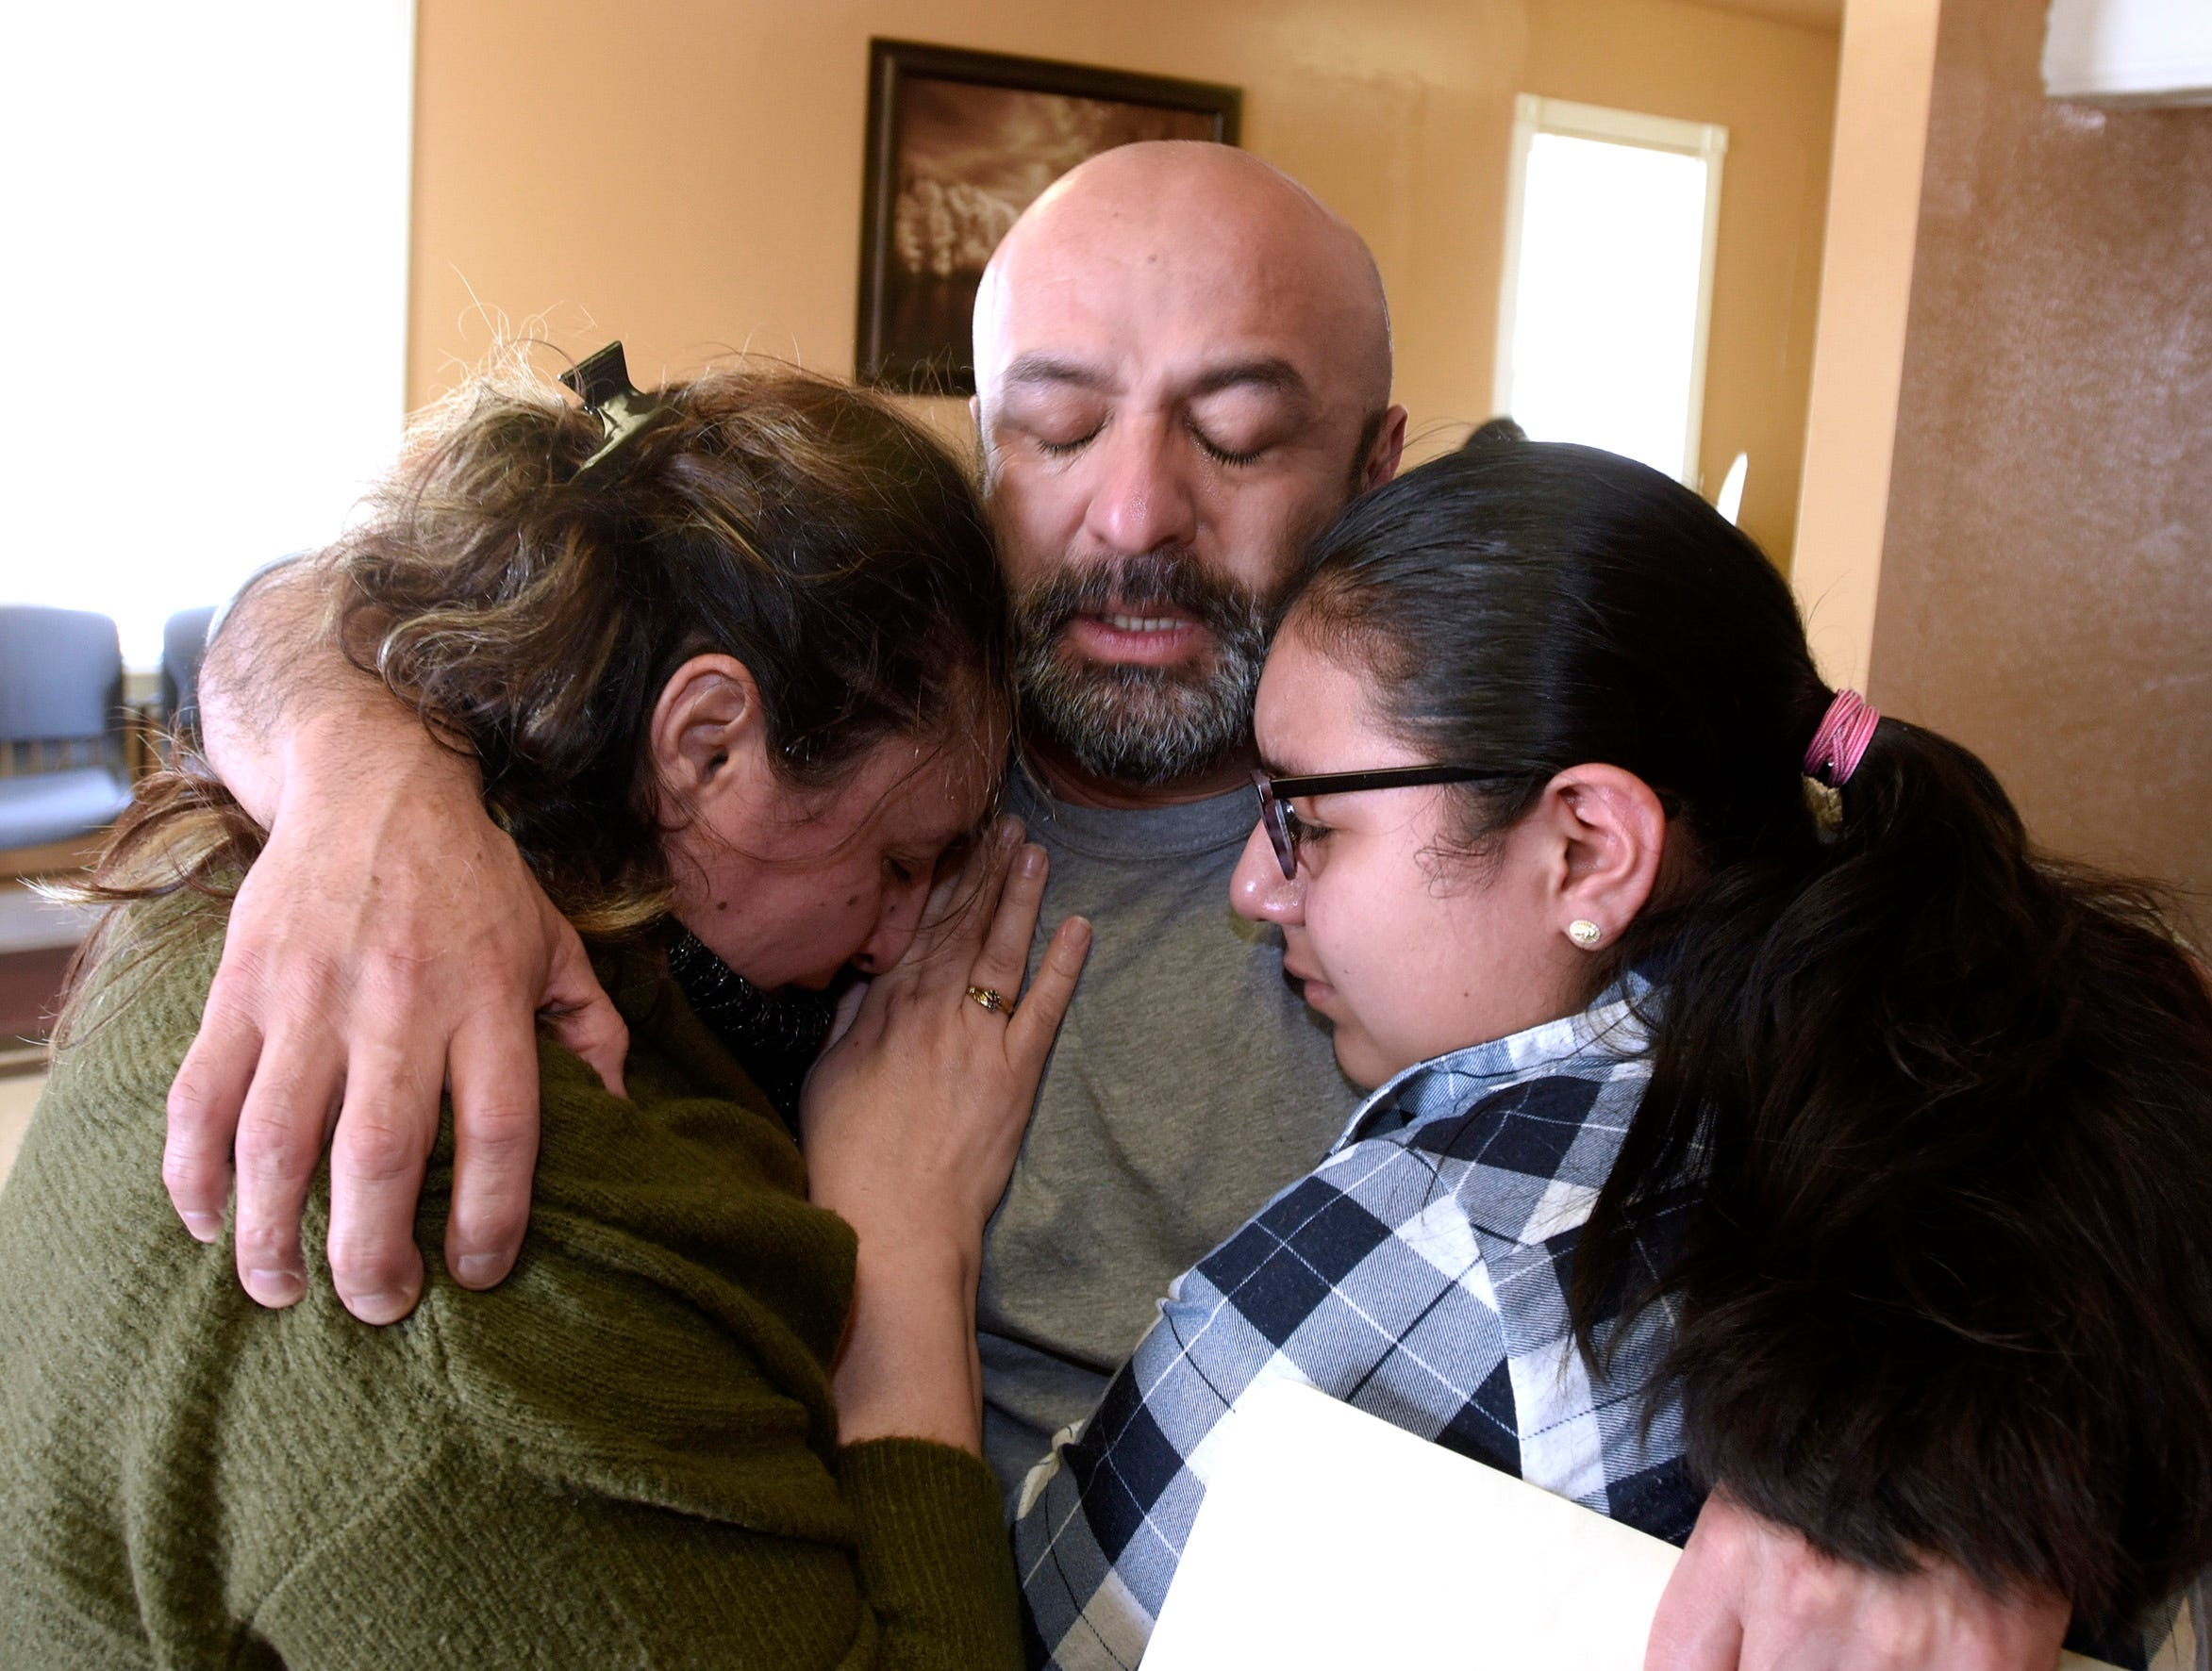 Fernando Lugo-Zarate of Melvindale, center, hugs his wife, Maria Socorro-Lugo, left, and their daughter, Laila Lugo, right, on April 12, 2018. It was the first time they had been together since March 18, when the parents were arrested at their home in a sweep of undocumented immigrants in Metro Detroit.